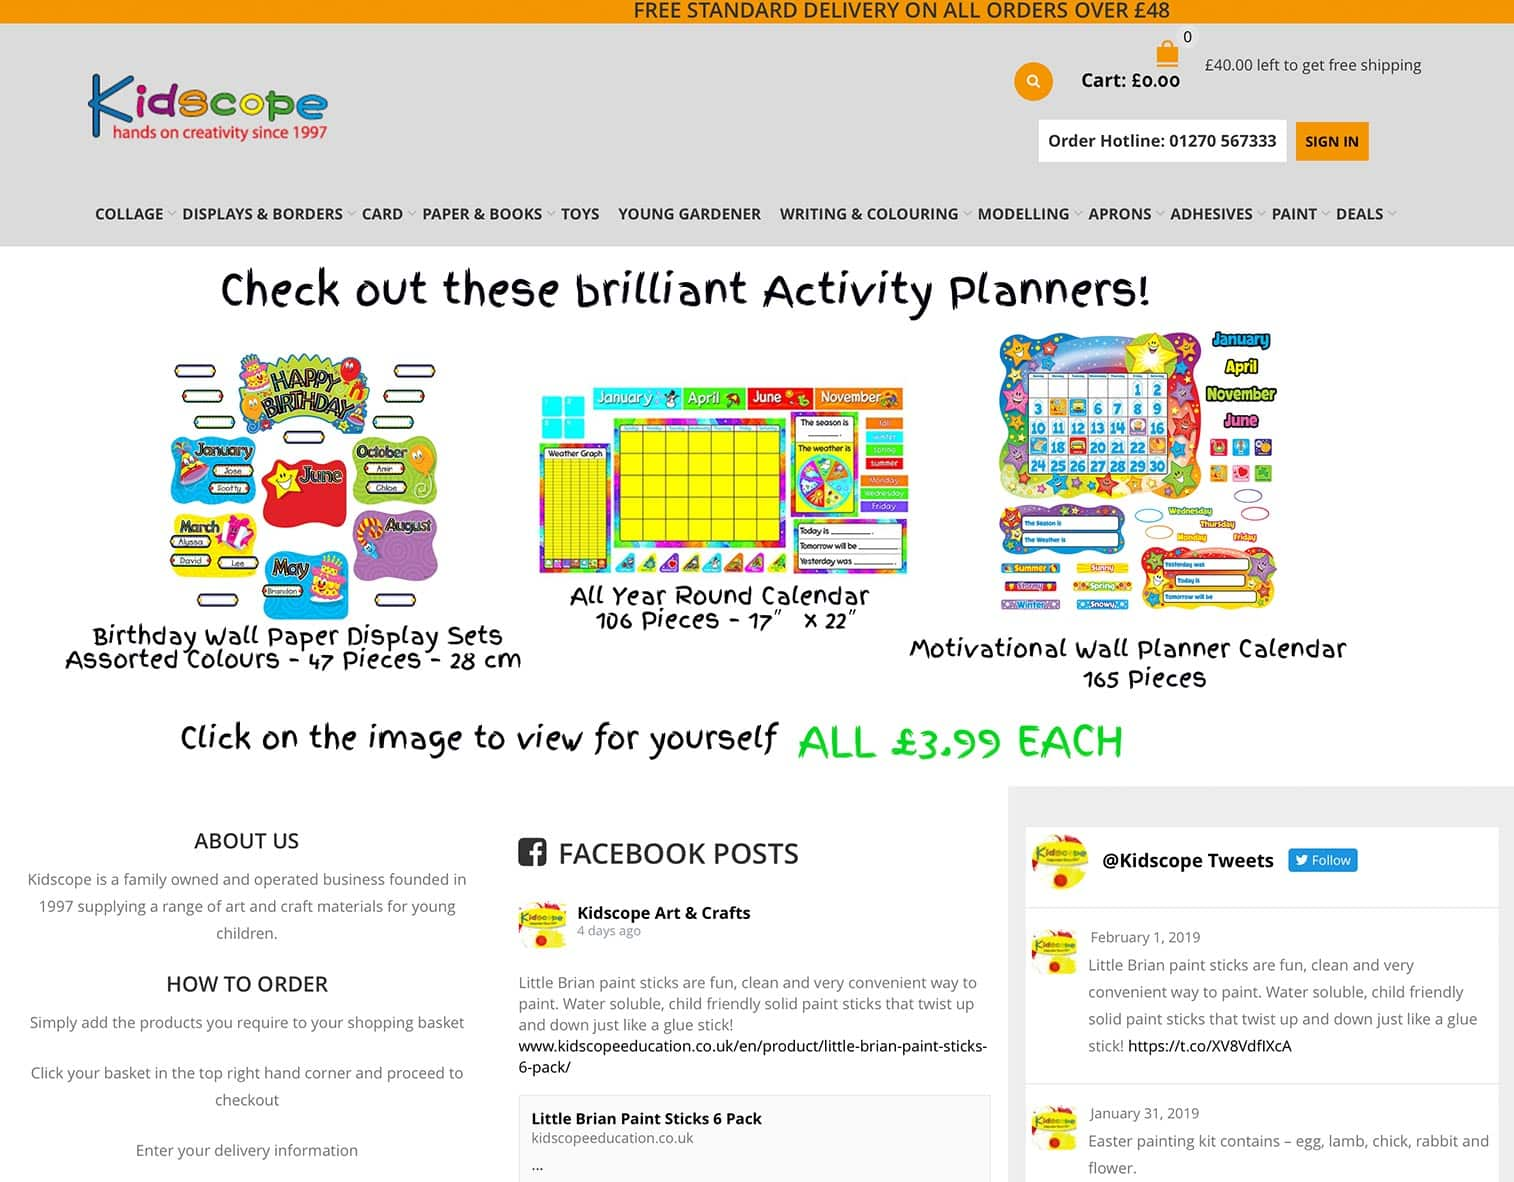 Kidscope Education Website